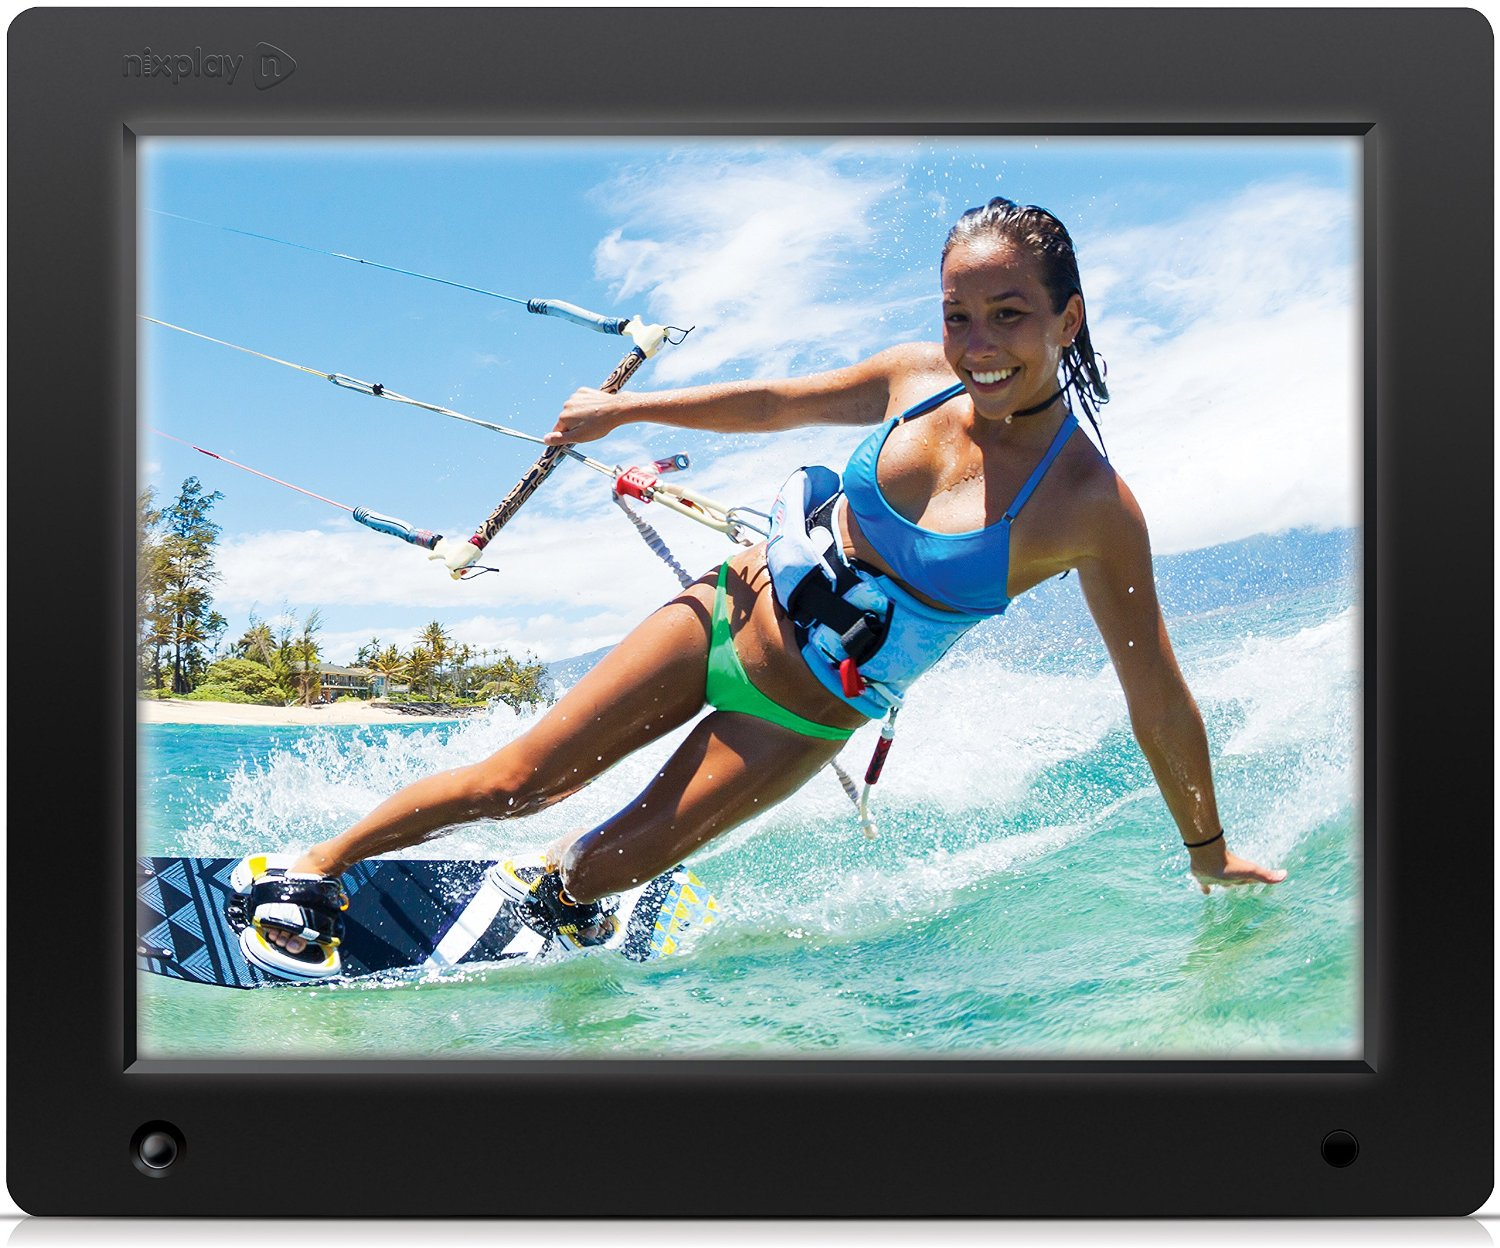 Lovely Digital Decor Digital Picture Frame